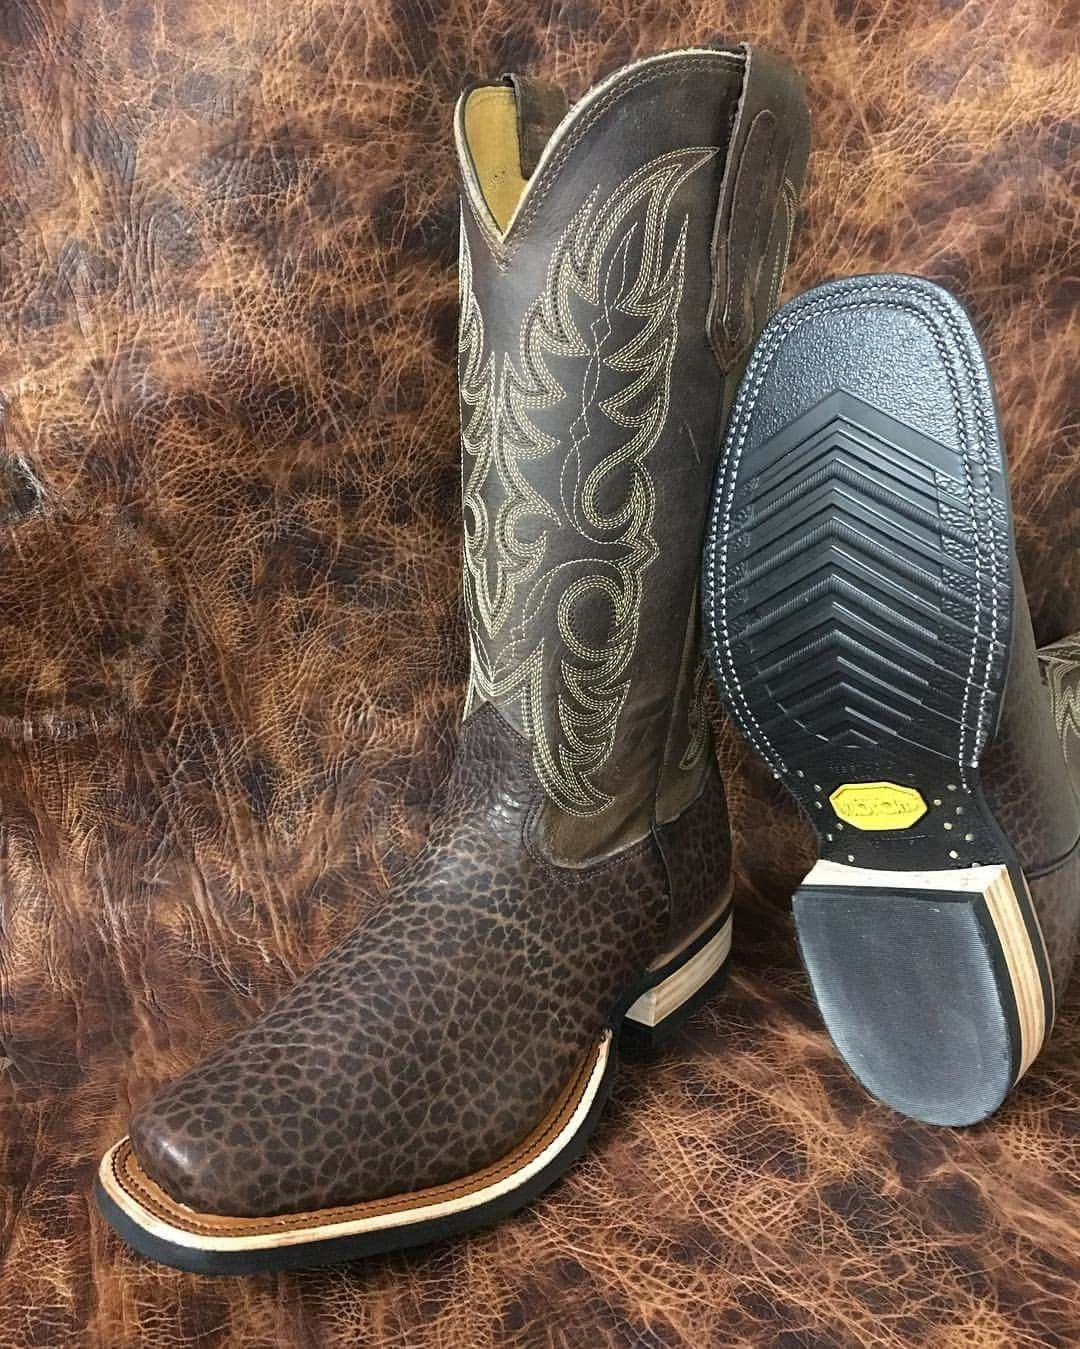 Pin By Mike Winter On Fenoglio Boots Co Boots Cowboy Boots Cowboy